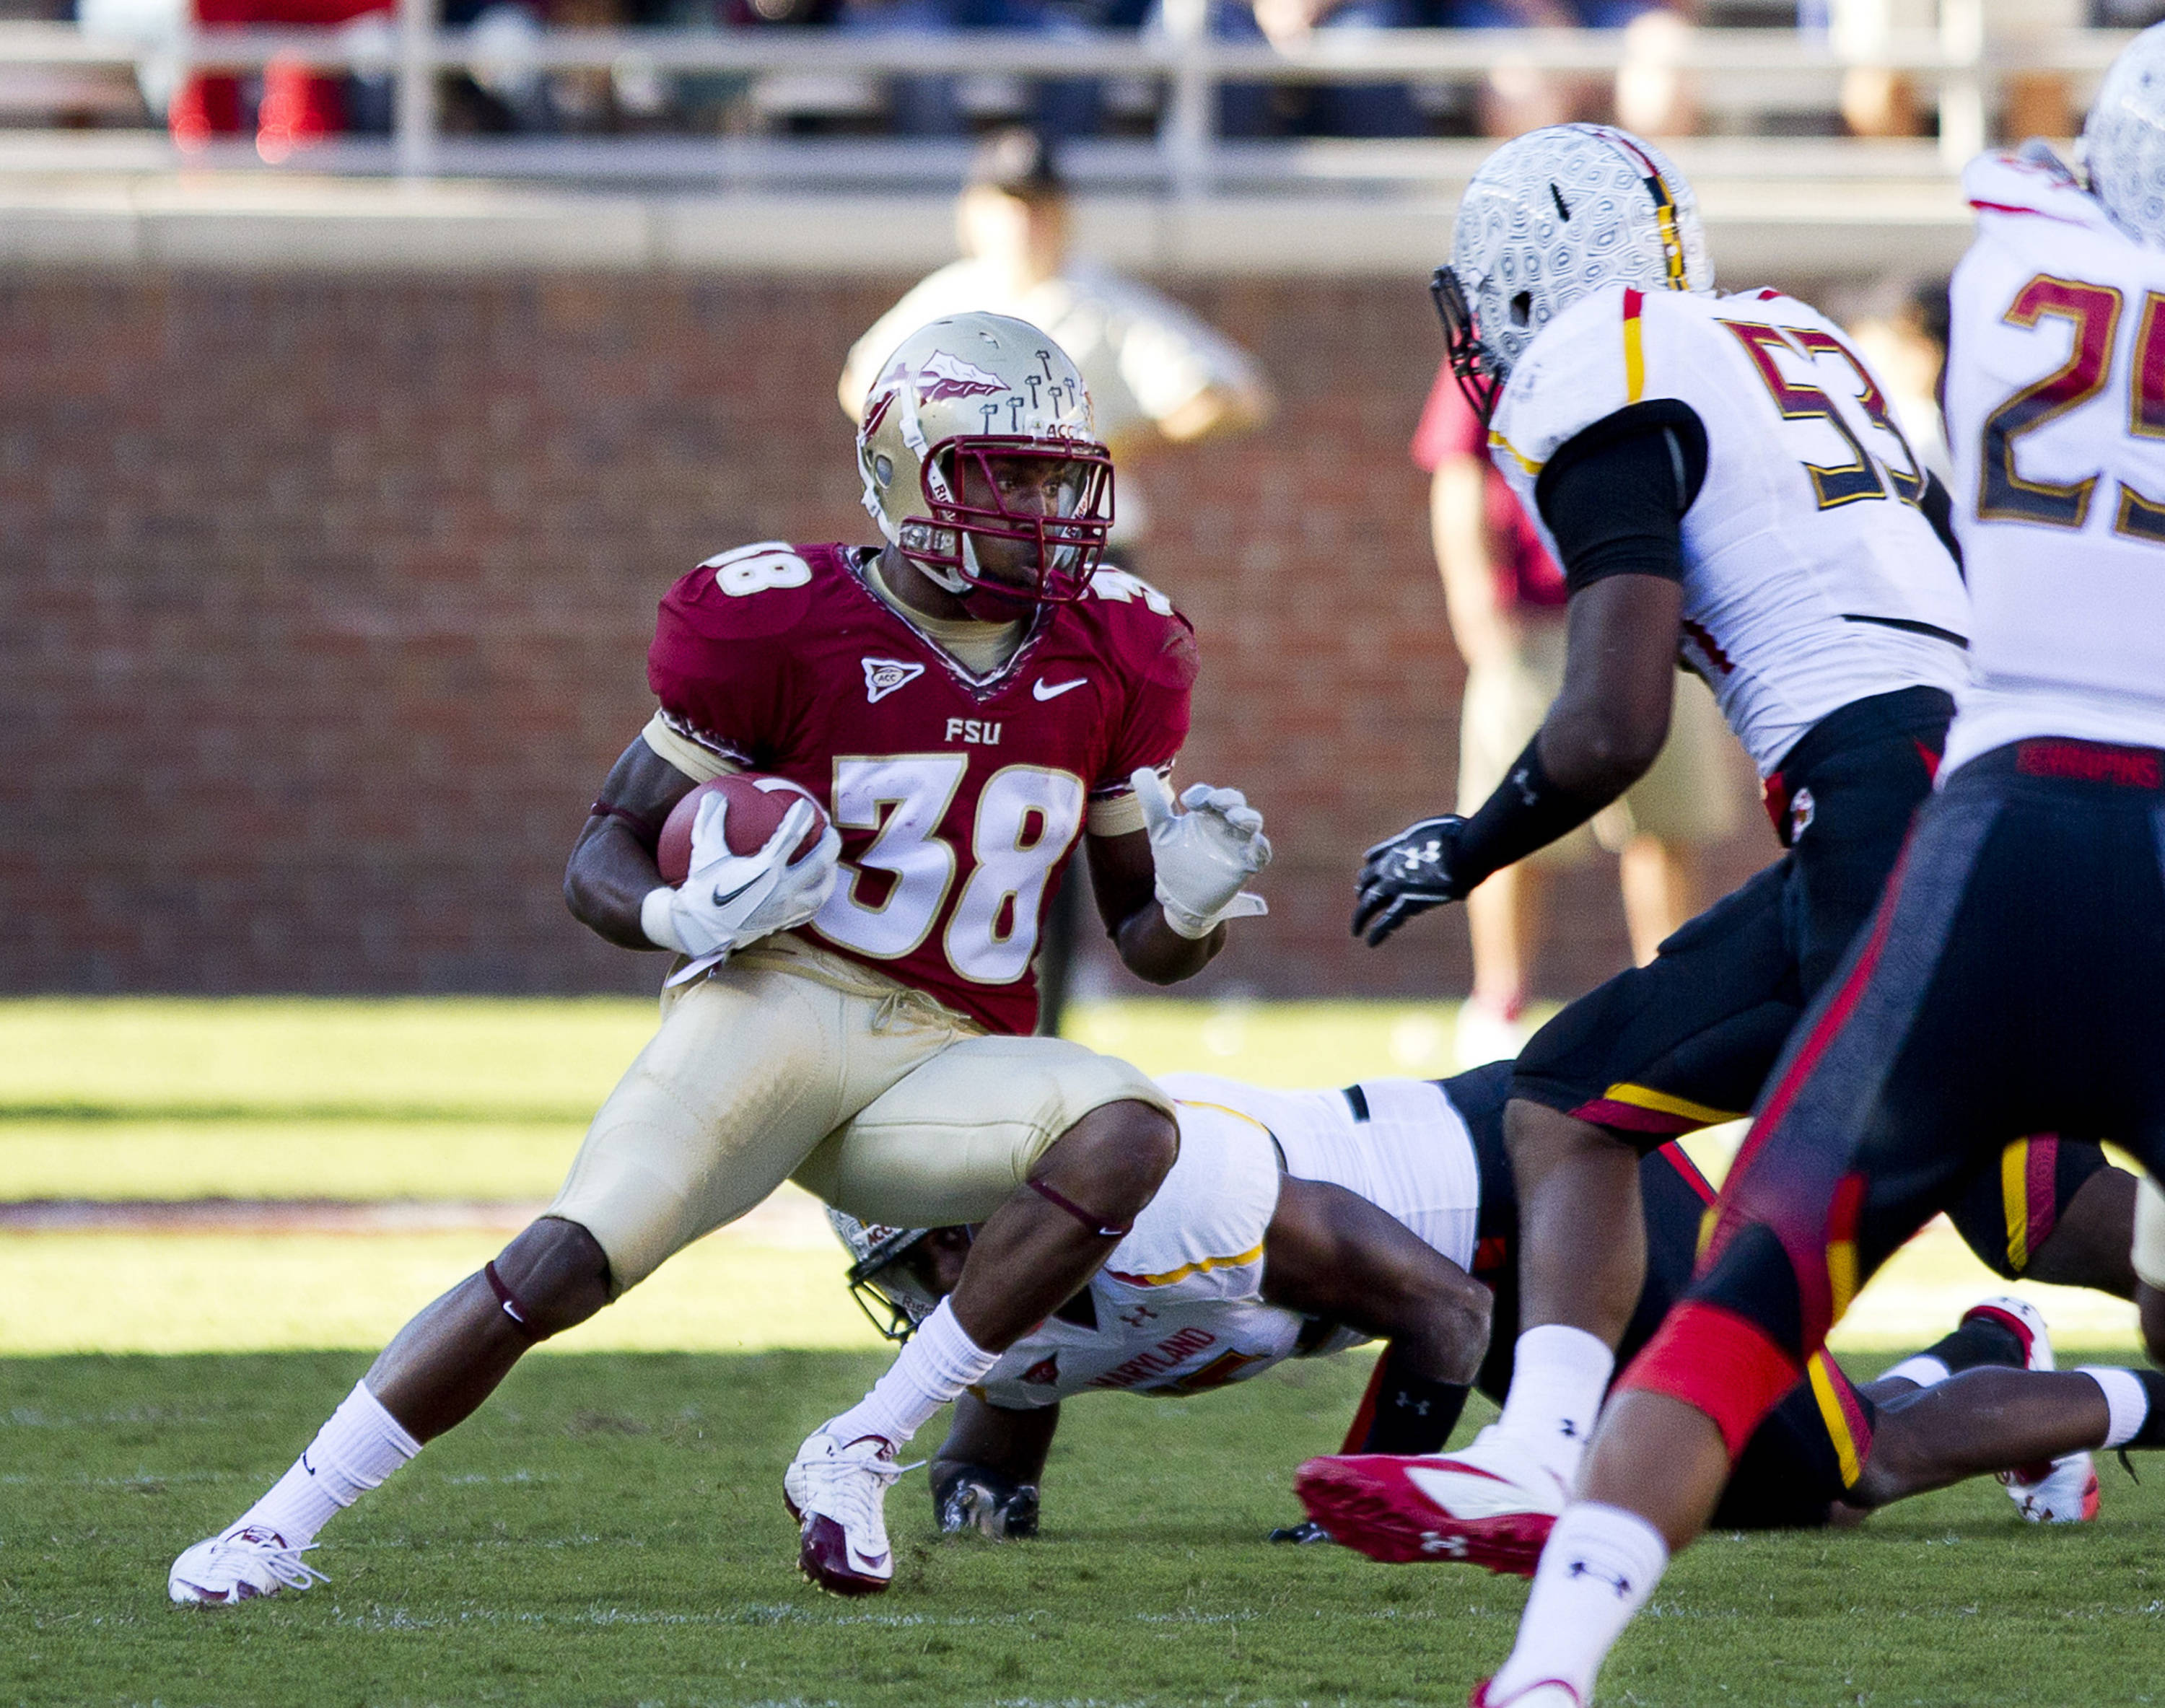 Jermaine Thomas (38) carries the ball past Maryland defenders during the football game against Maryland in Tallahassee, Florida on October 22, 2011.